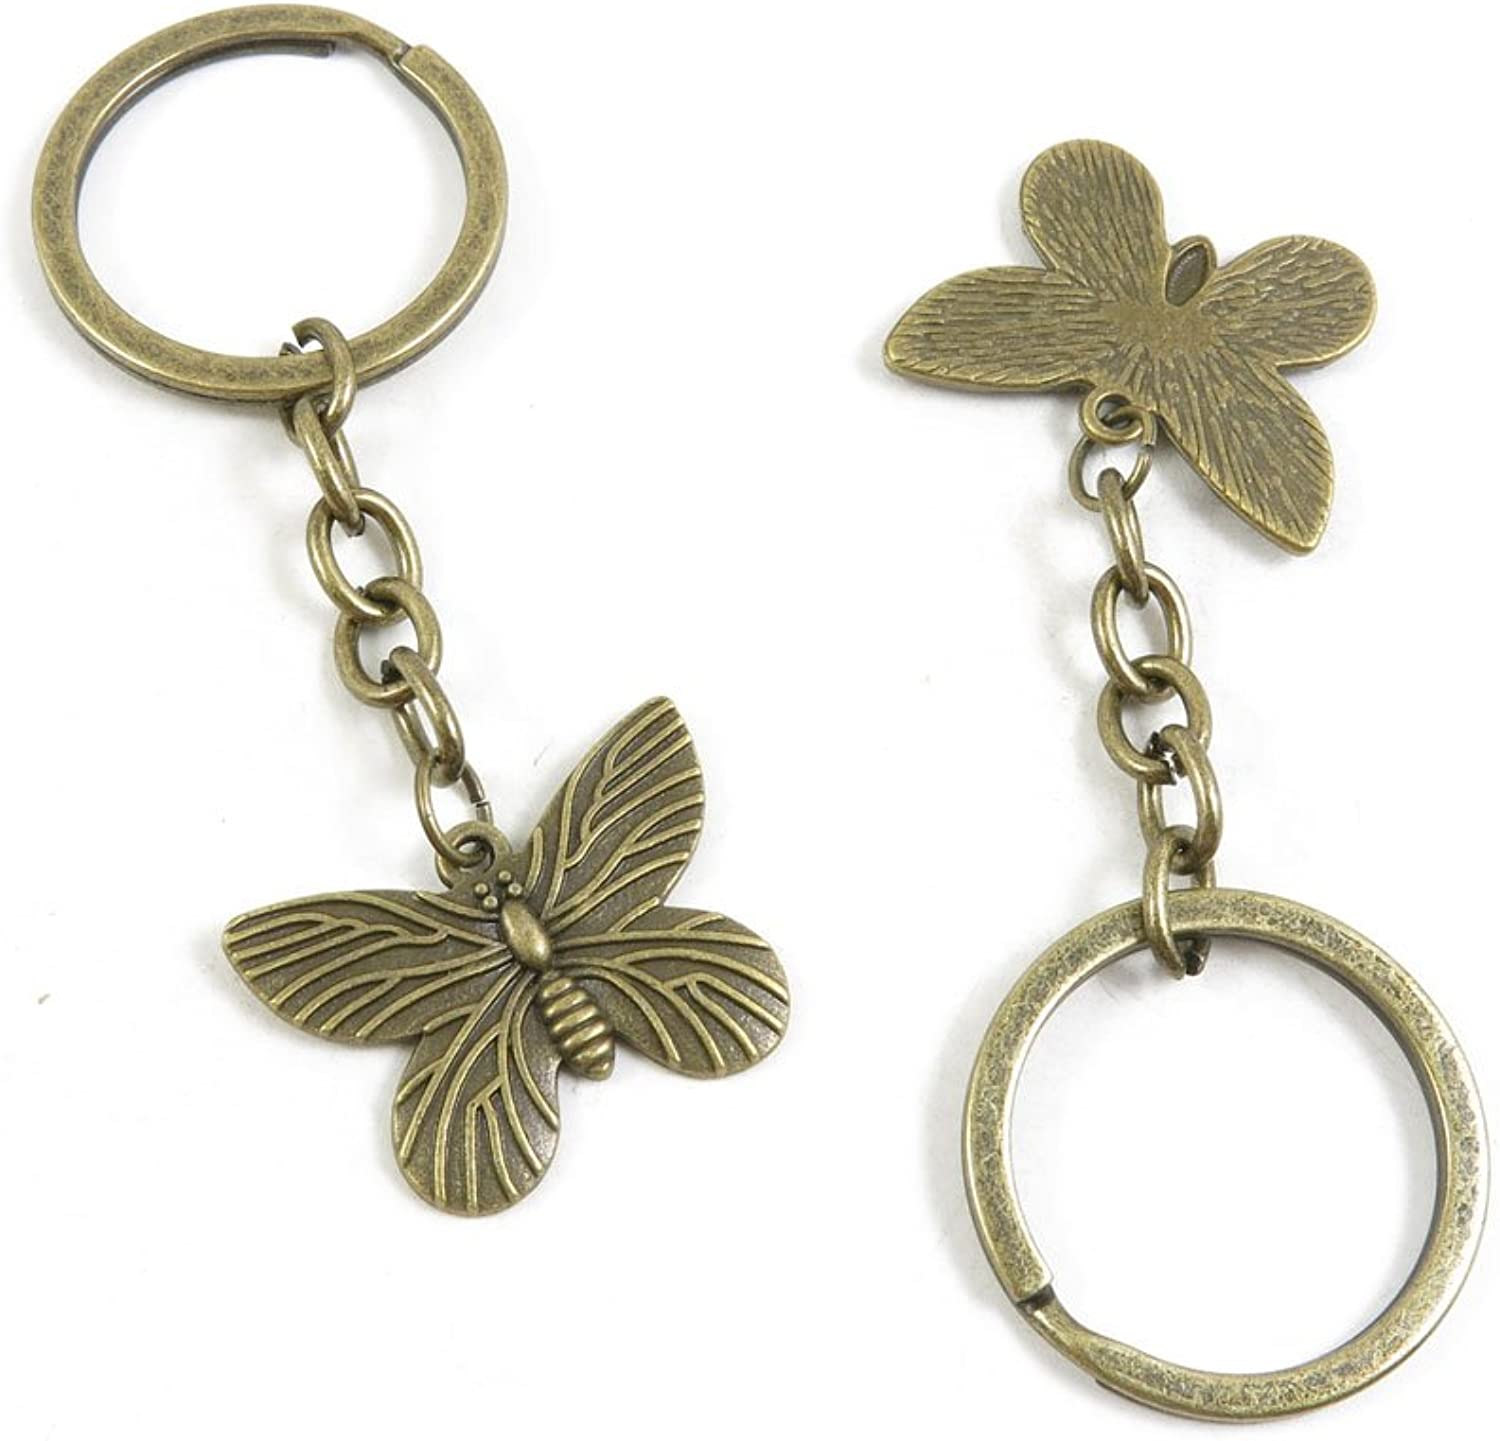 170 Pieces Fashion Jewelry Keyring Keychain Door Car Key Tag Ring Chain Supplier Supply Wholesale Bulk Lots A6VL7 Butterfly